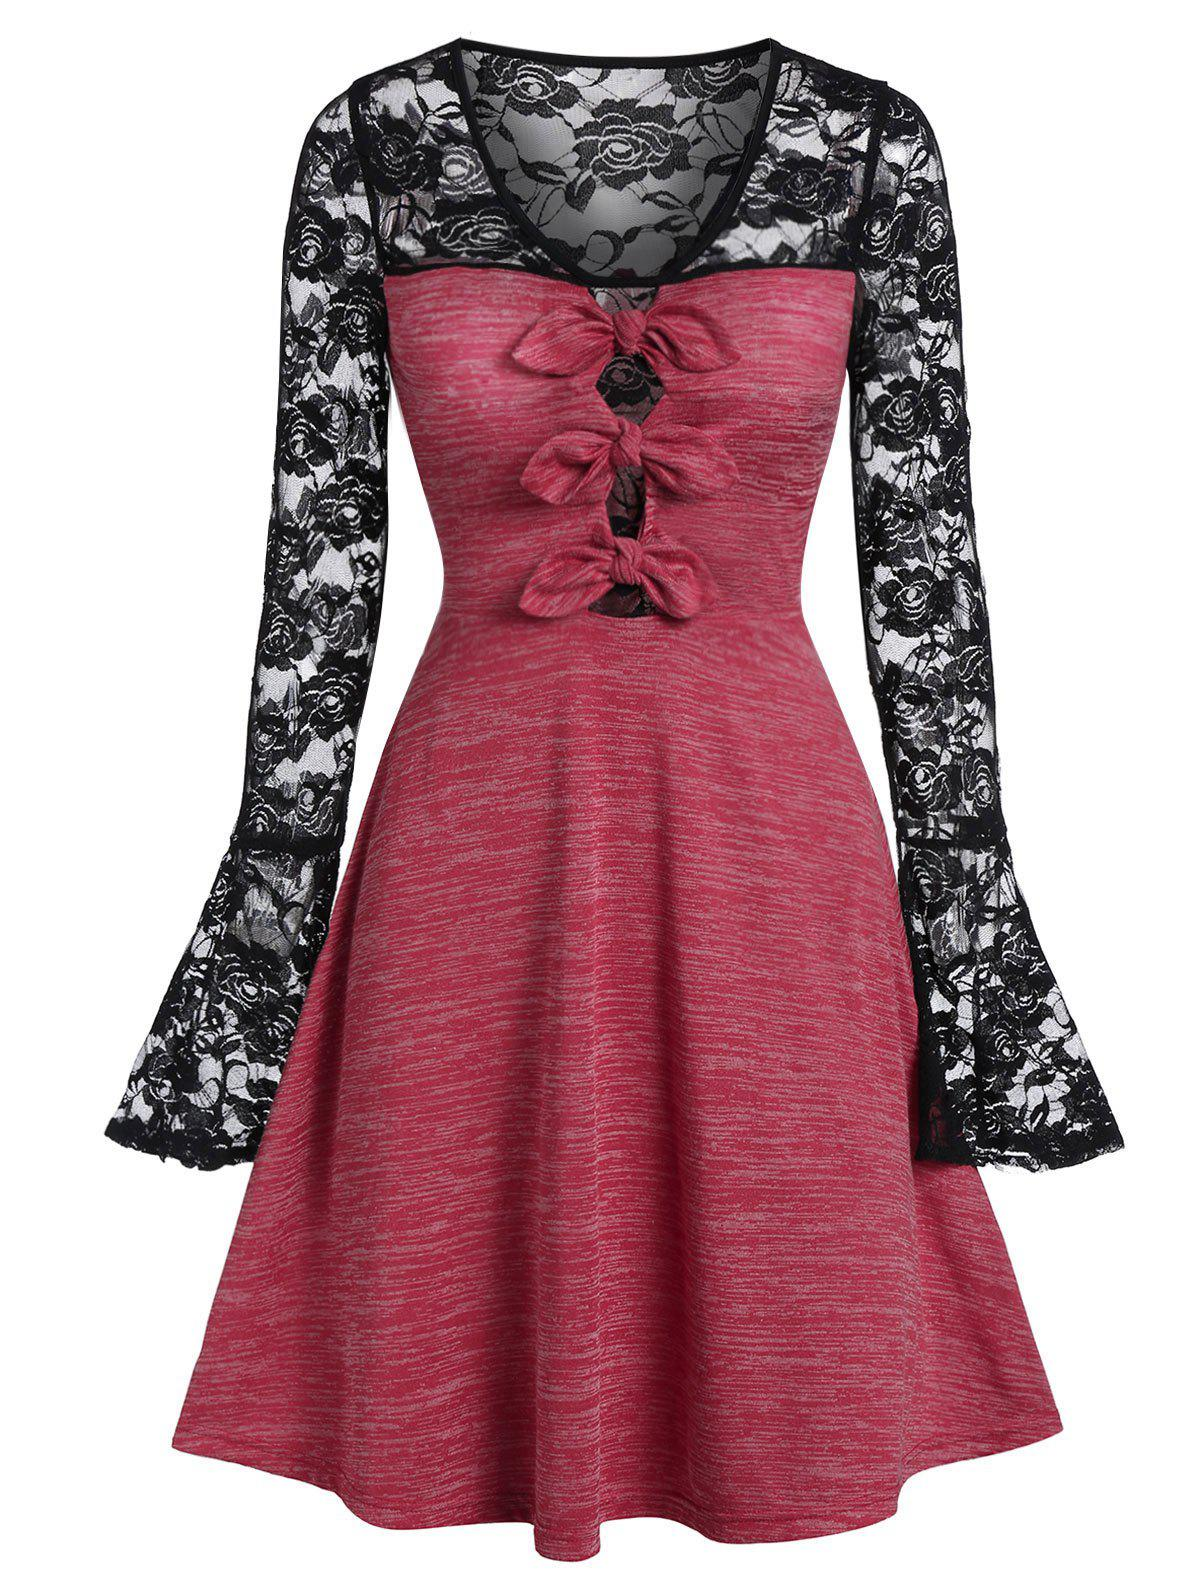 Lace Panel Marled A Line Dress - CHERRY RED XL